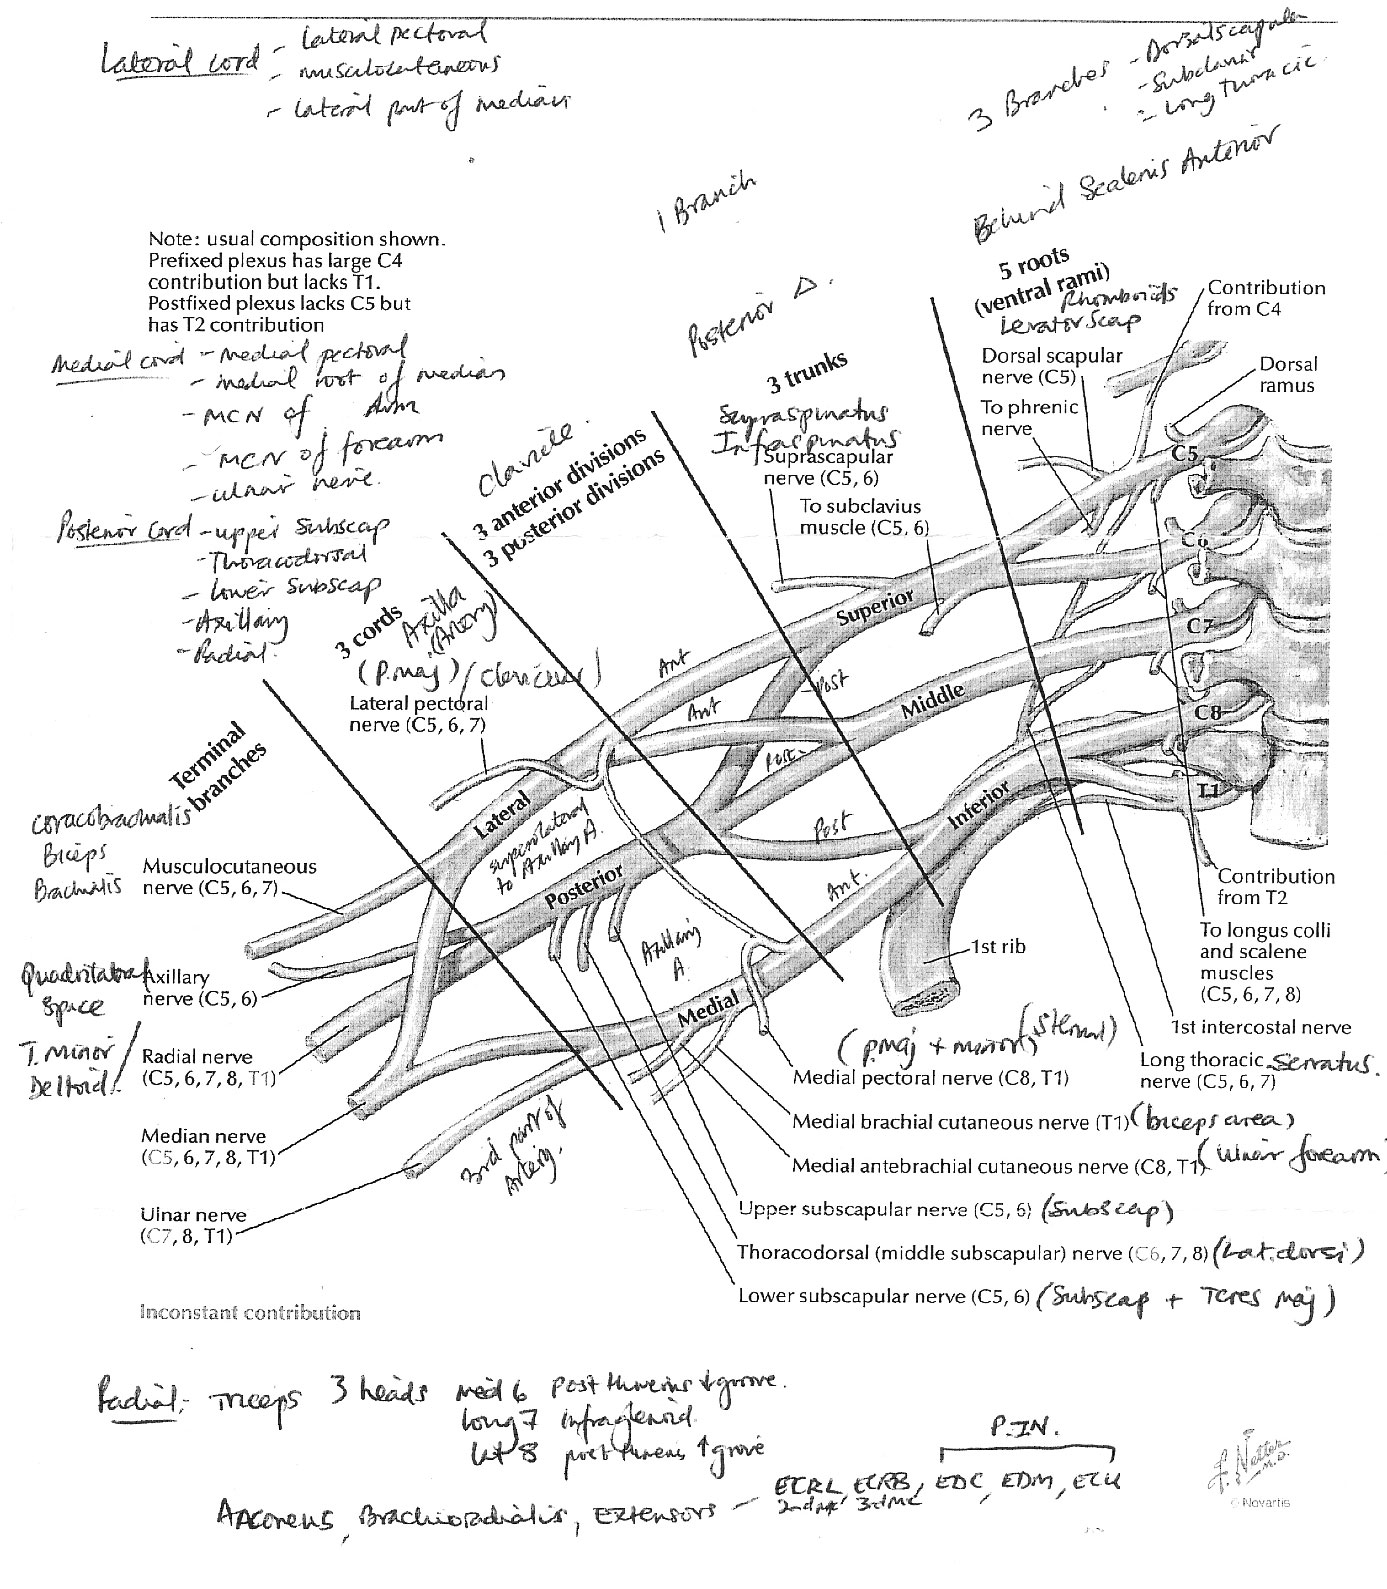 Brachial plexus Injury